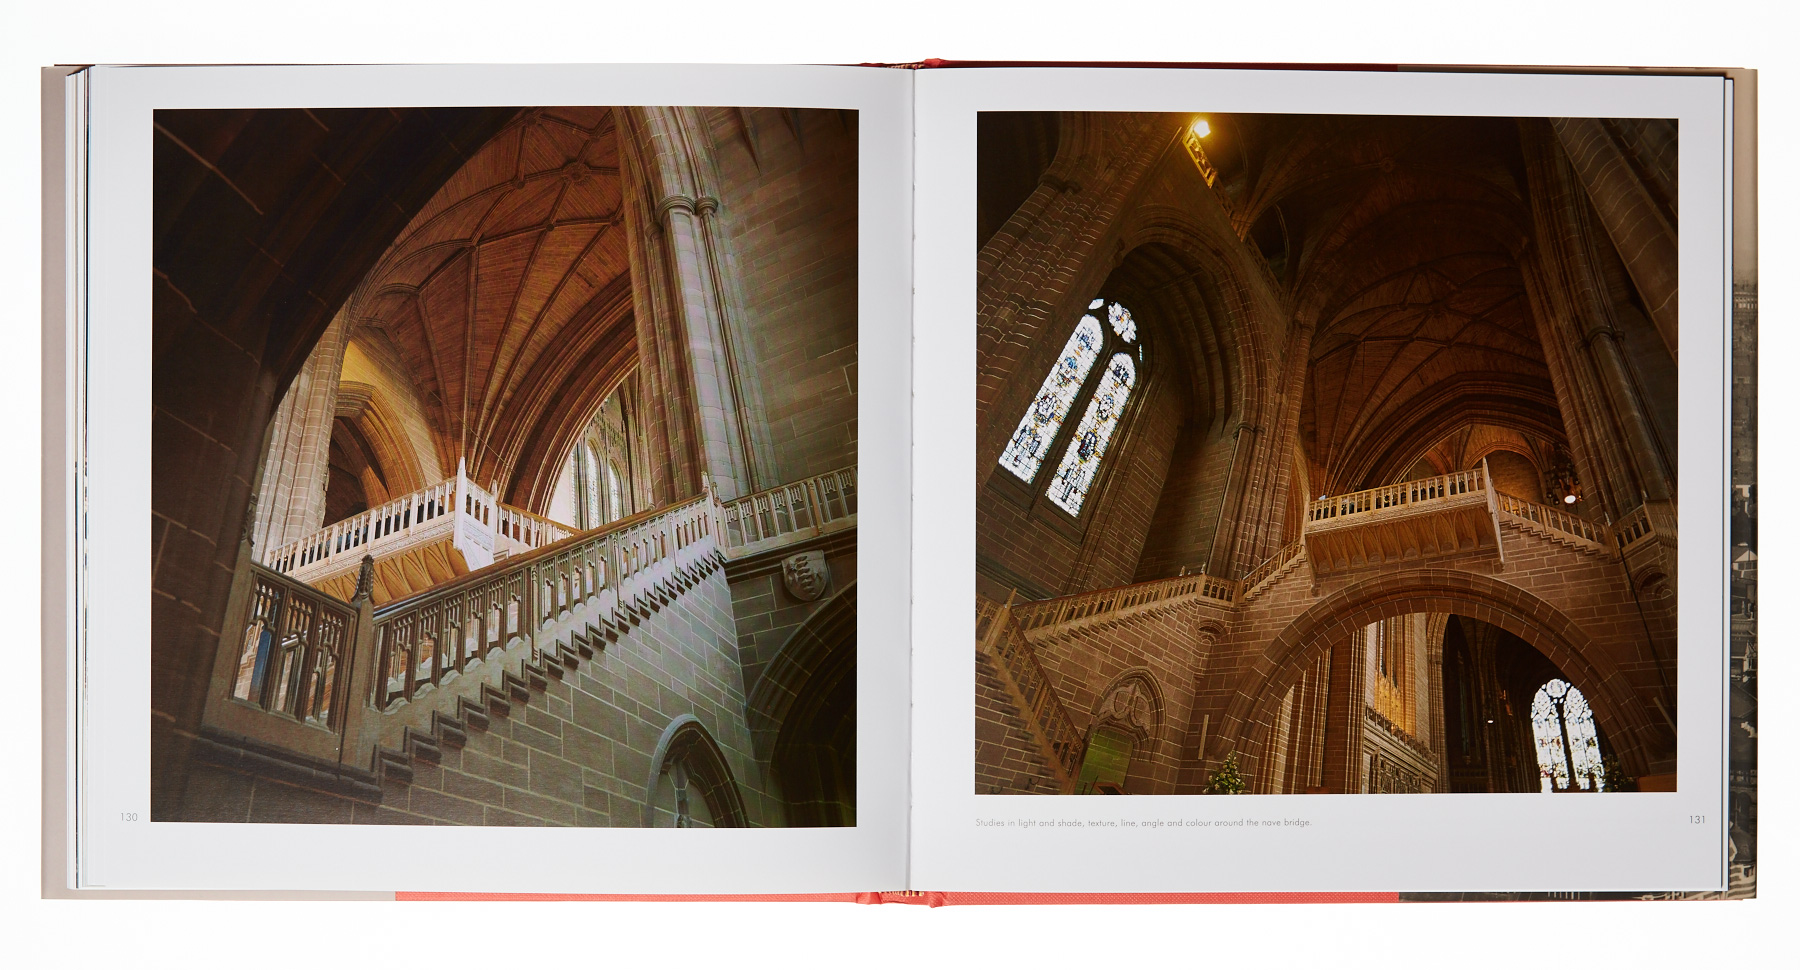 liverpool-cathedral-book-page-130.jpg